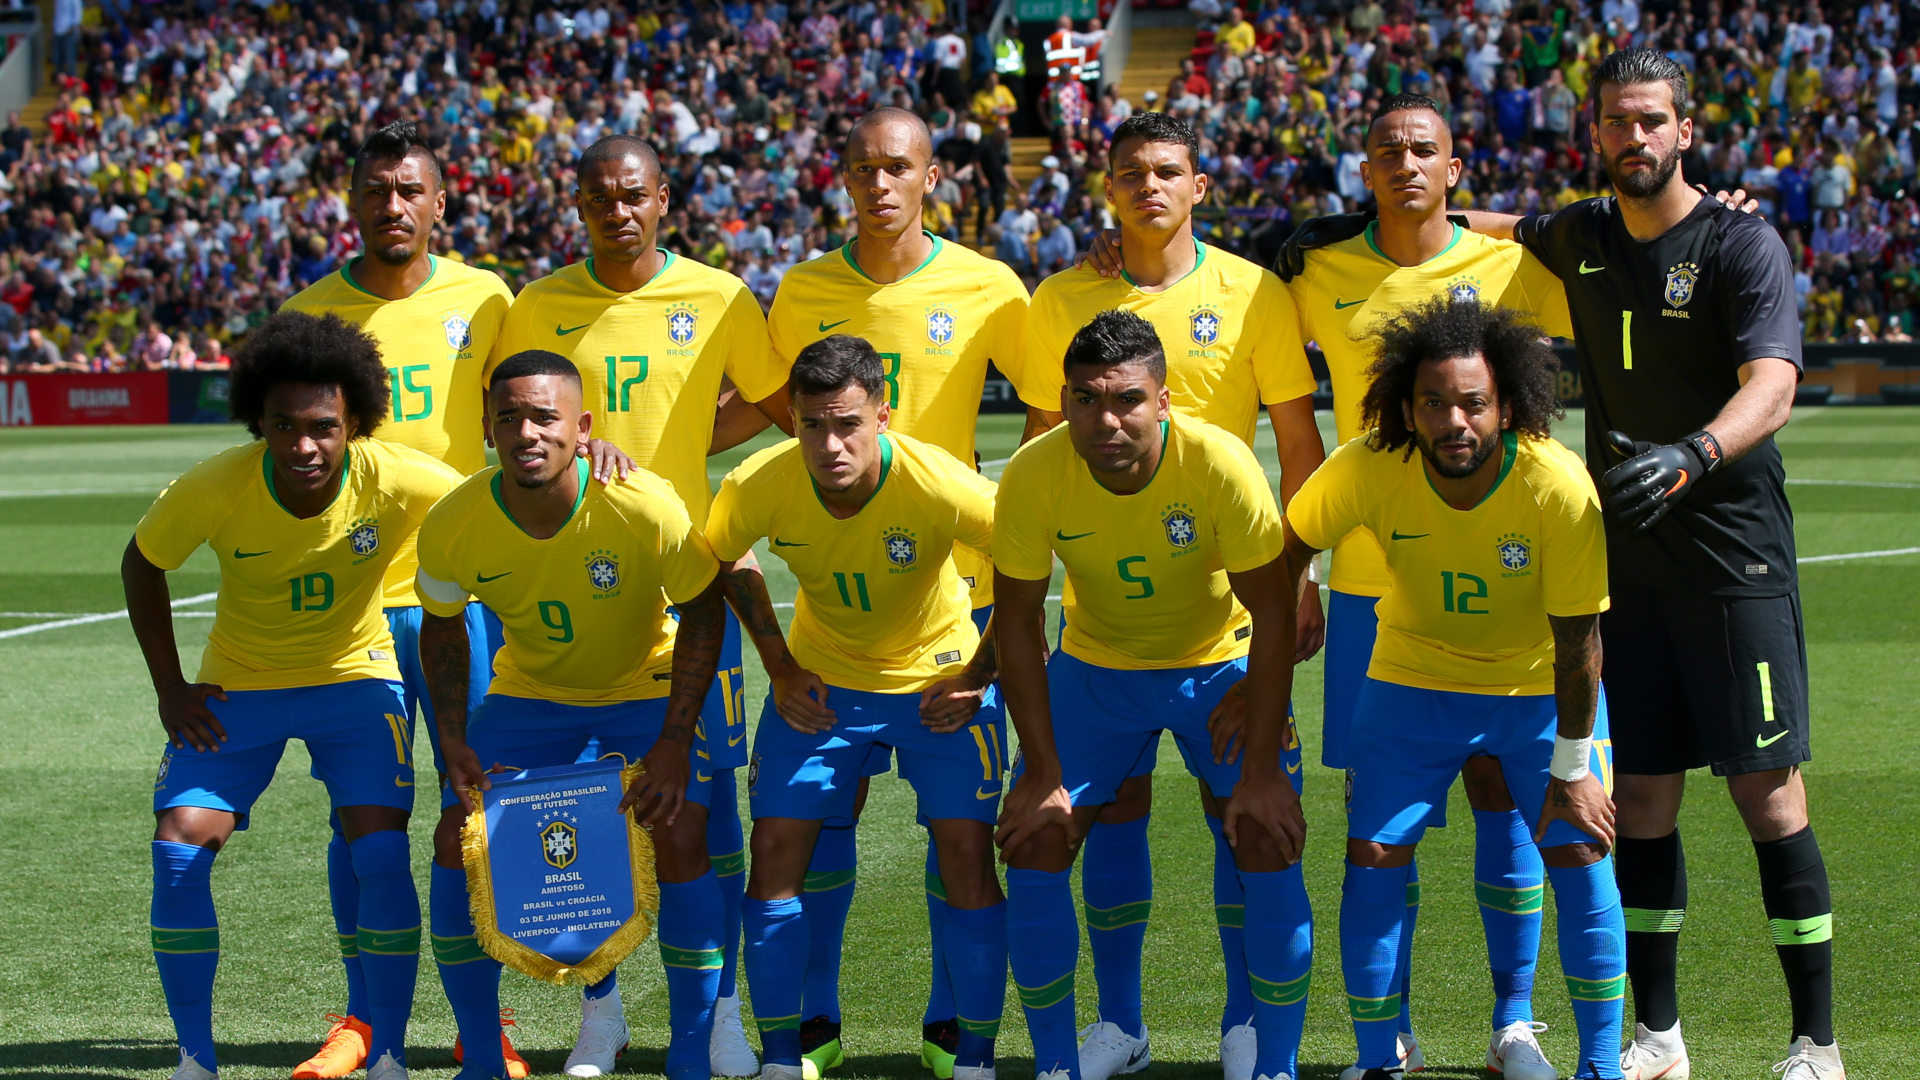 Austria vs. Brazil - Football Match Report